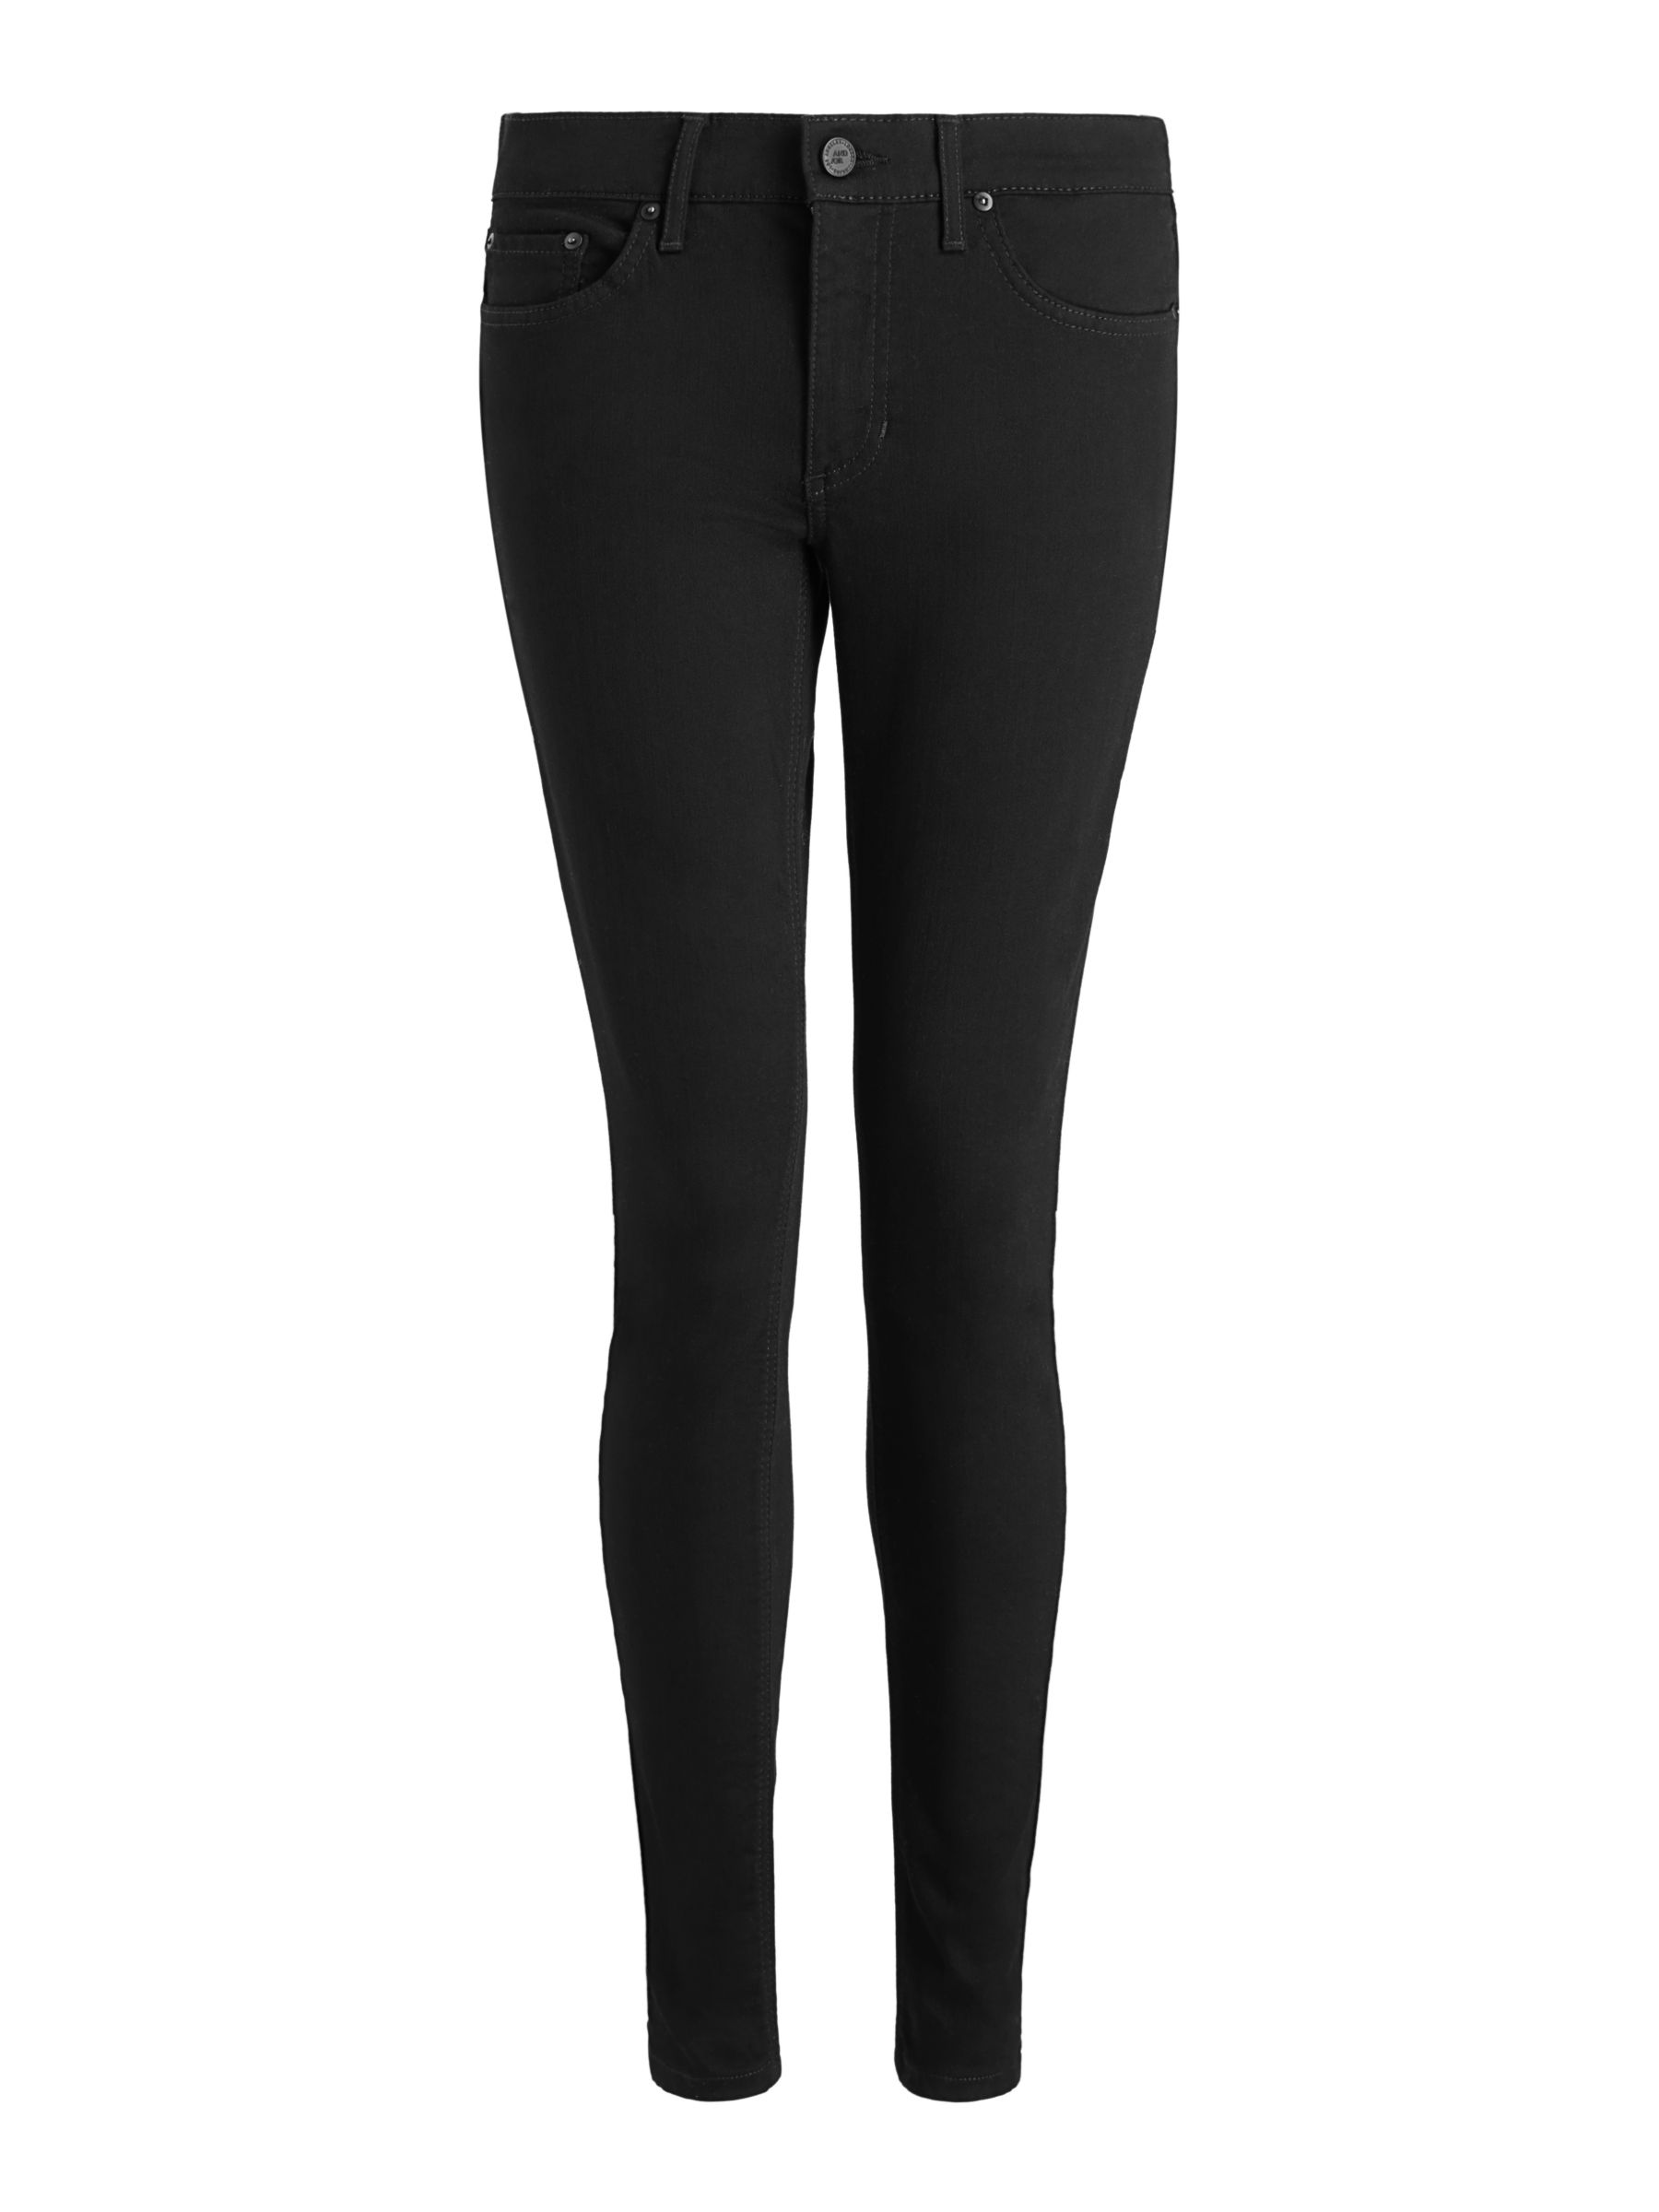 Buy AND/OR Abbot Kinney Skinny Jeans, Stay Black, 26 Online at johnlewis.com